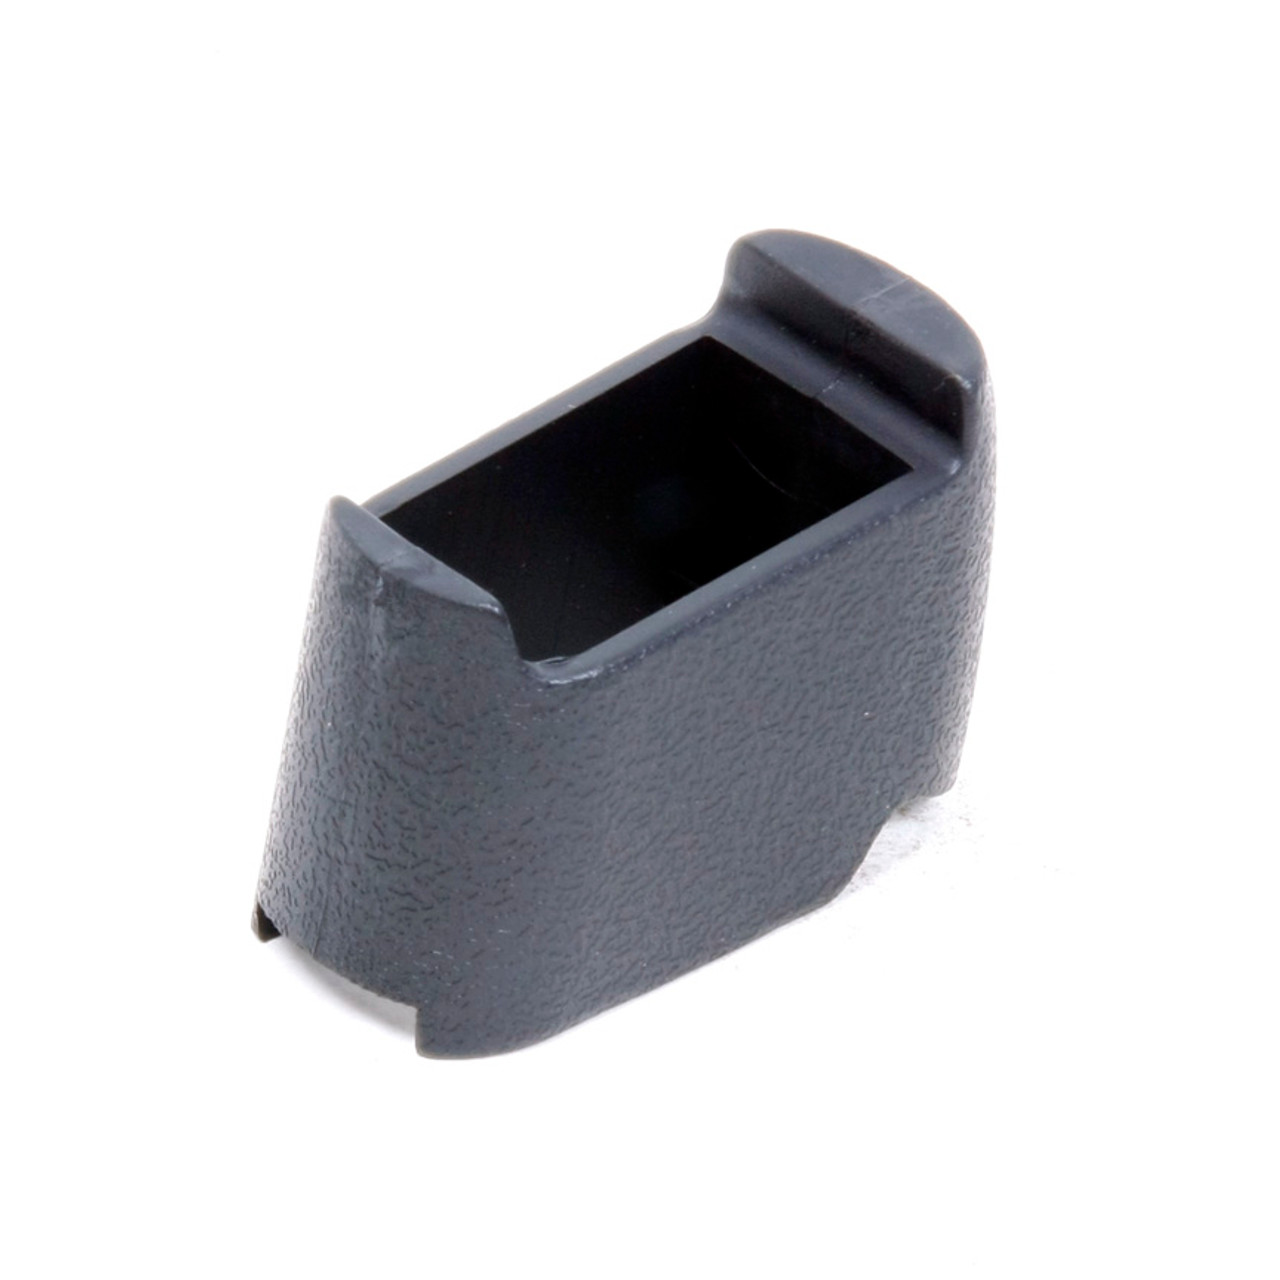 Magazine Spacer for the Glock® (Use 17 / 22 Magazines in 26 / 27 Pistols) - Black Polymer